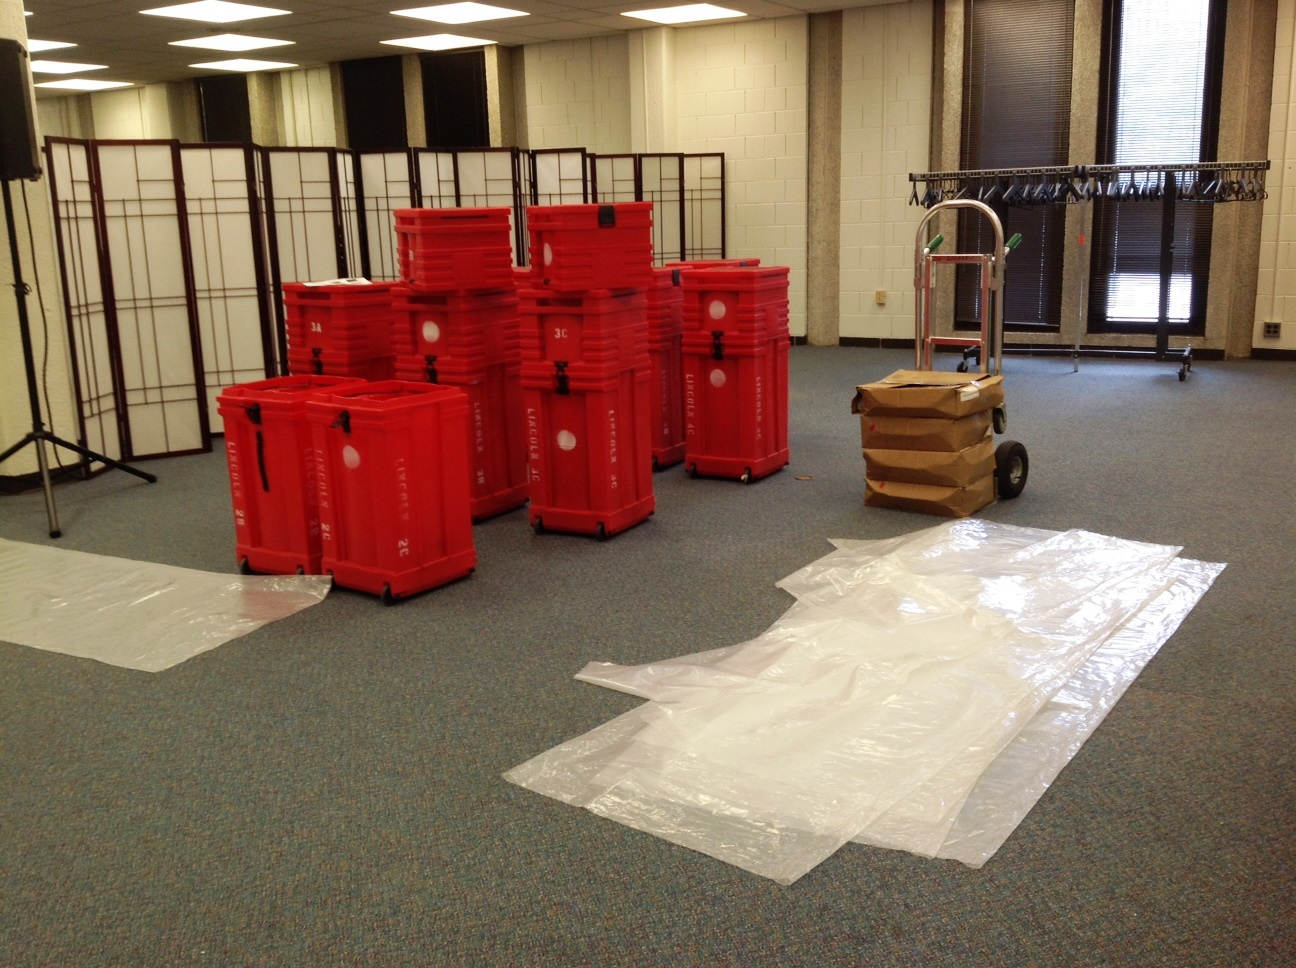 Staging area for exhibit, Library Events Area